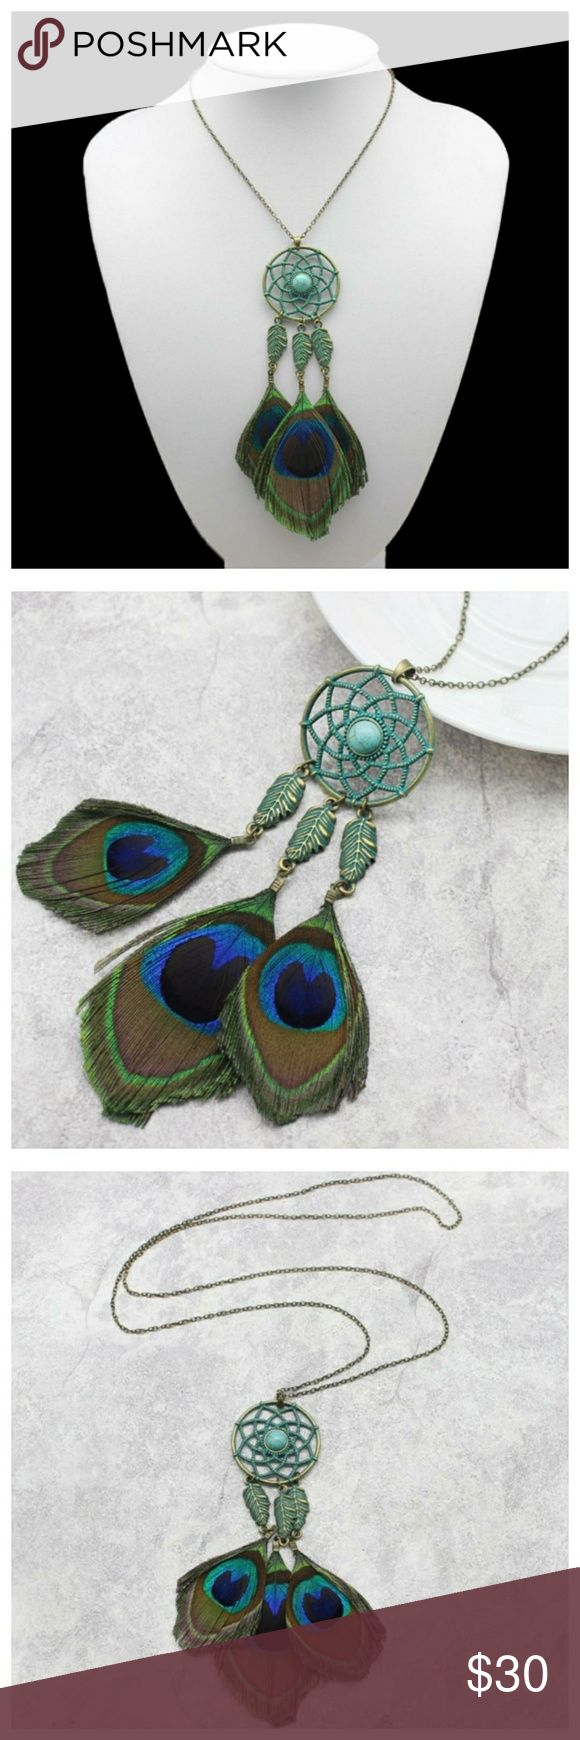 """🆕️ Genuine Peacock Feather Necklace Beautiful patina finish dreamcatcher with 3 dangling Peacock feathers. Lead and Nickel free! Chain length is 29.5"""". Jewelry Necklaces"""